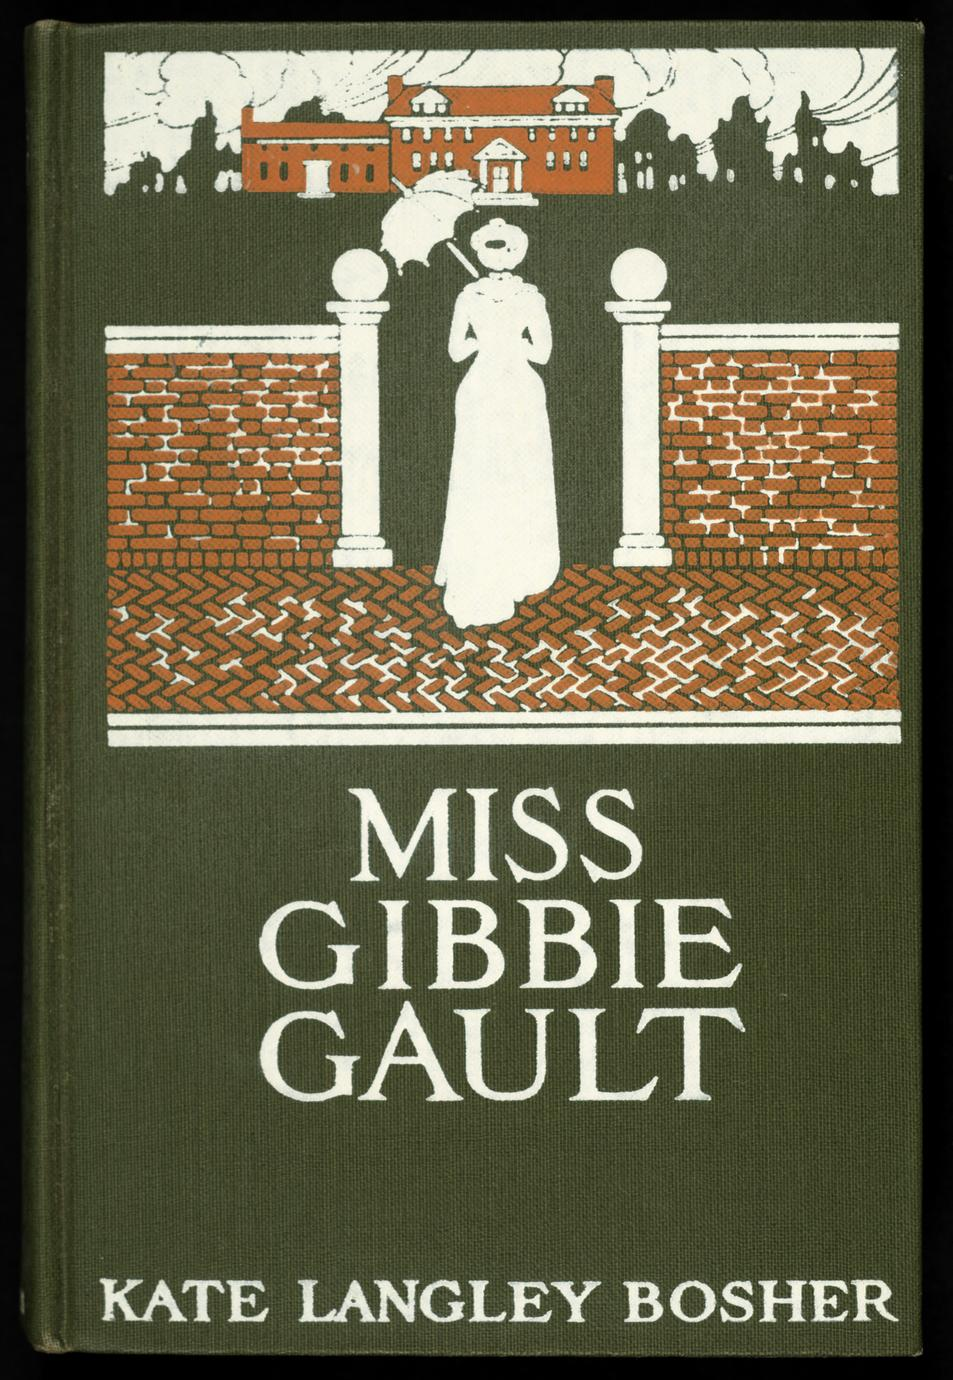 Miss Gibbie Gault : a story (1 of 2)